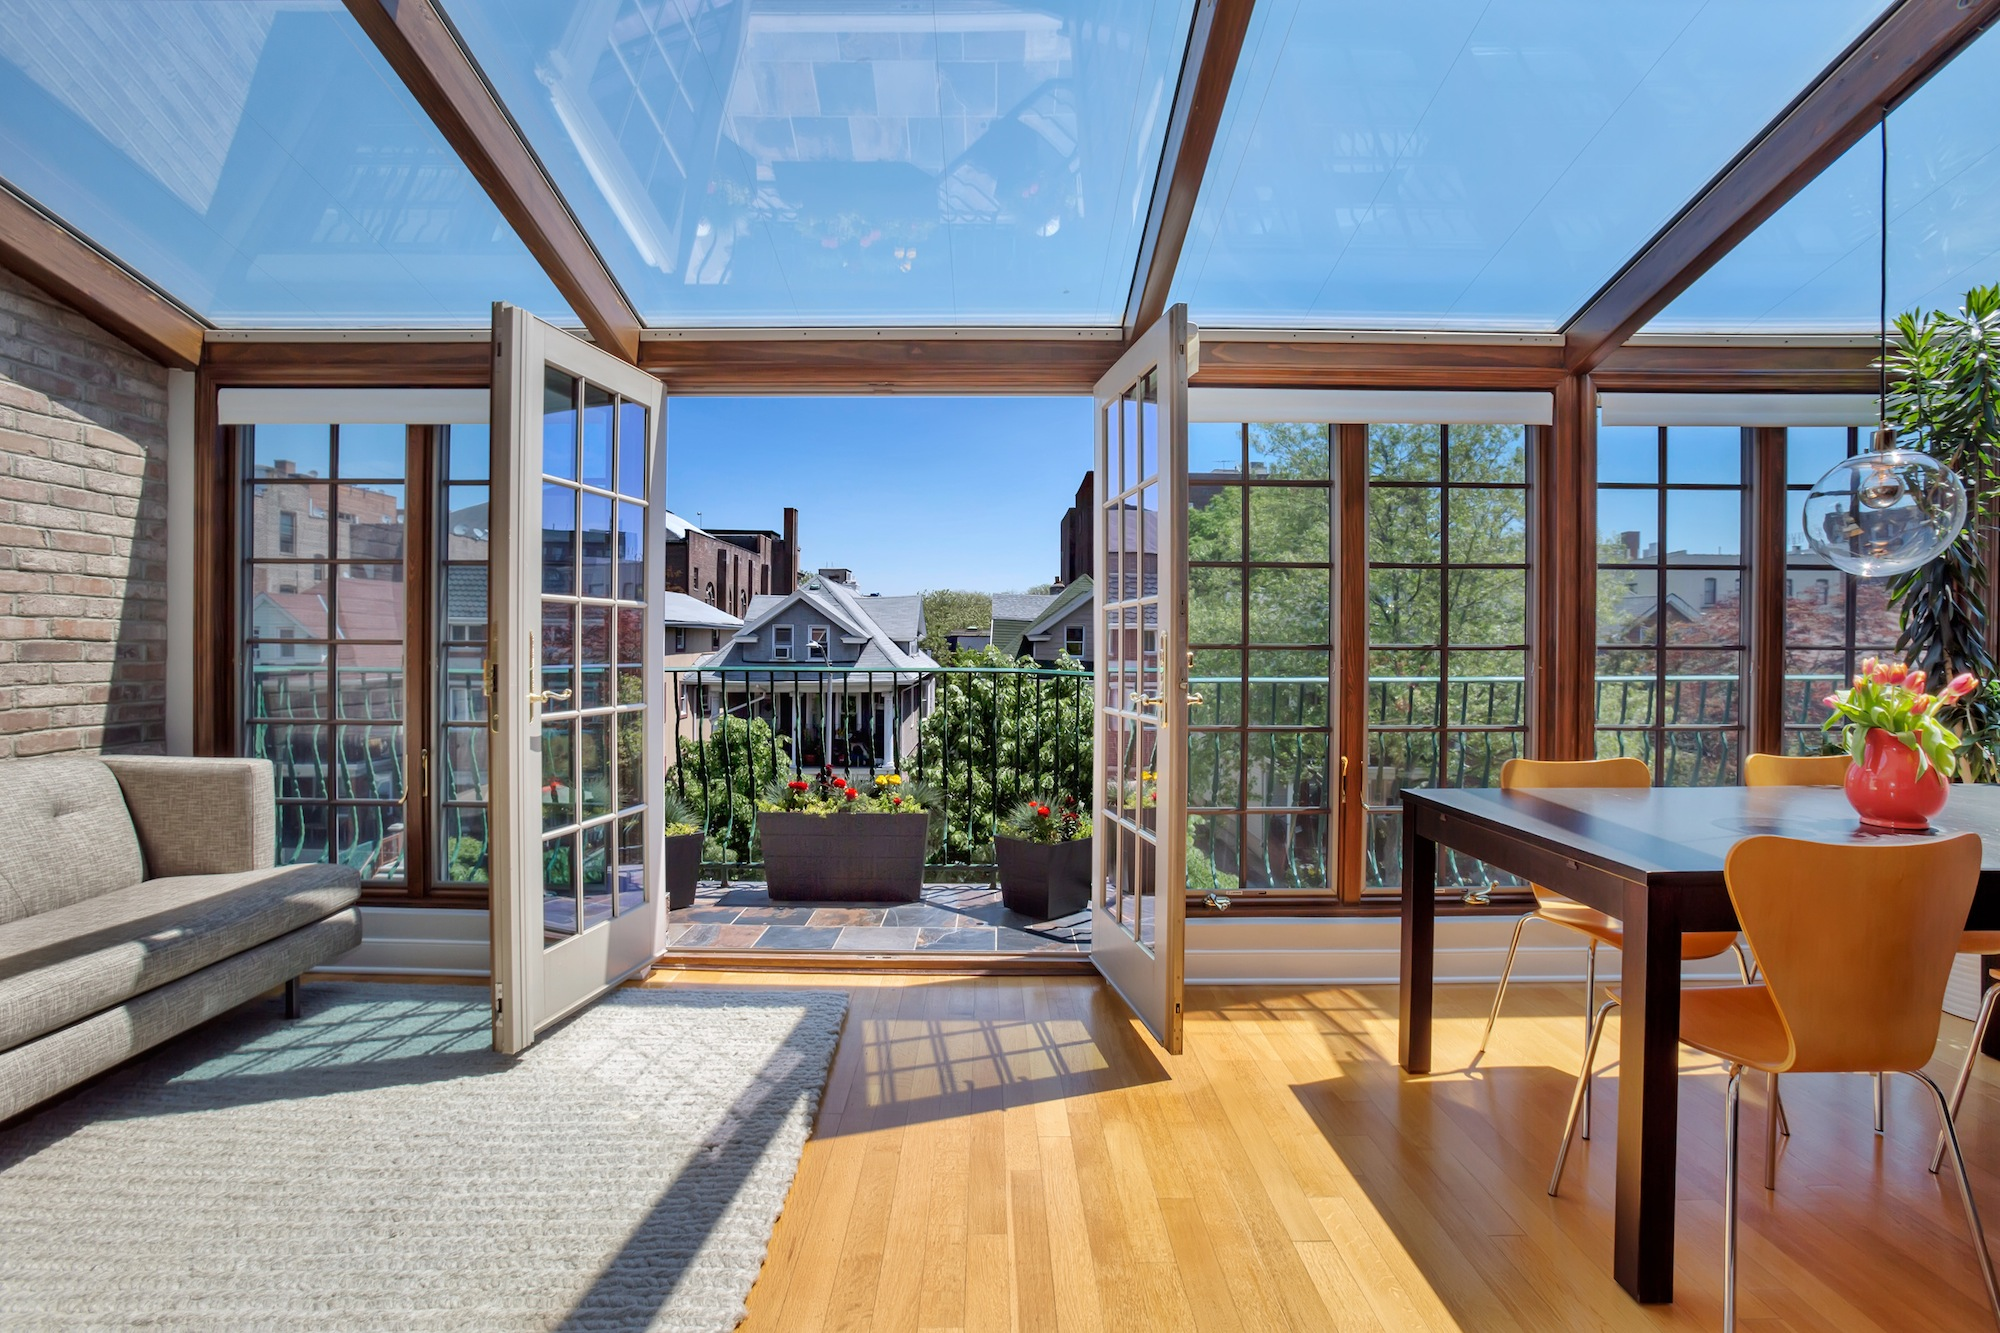 A Mini Solarium Brings Serious Sunlight To This $835K Kensington Apartment